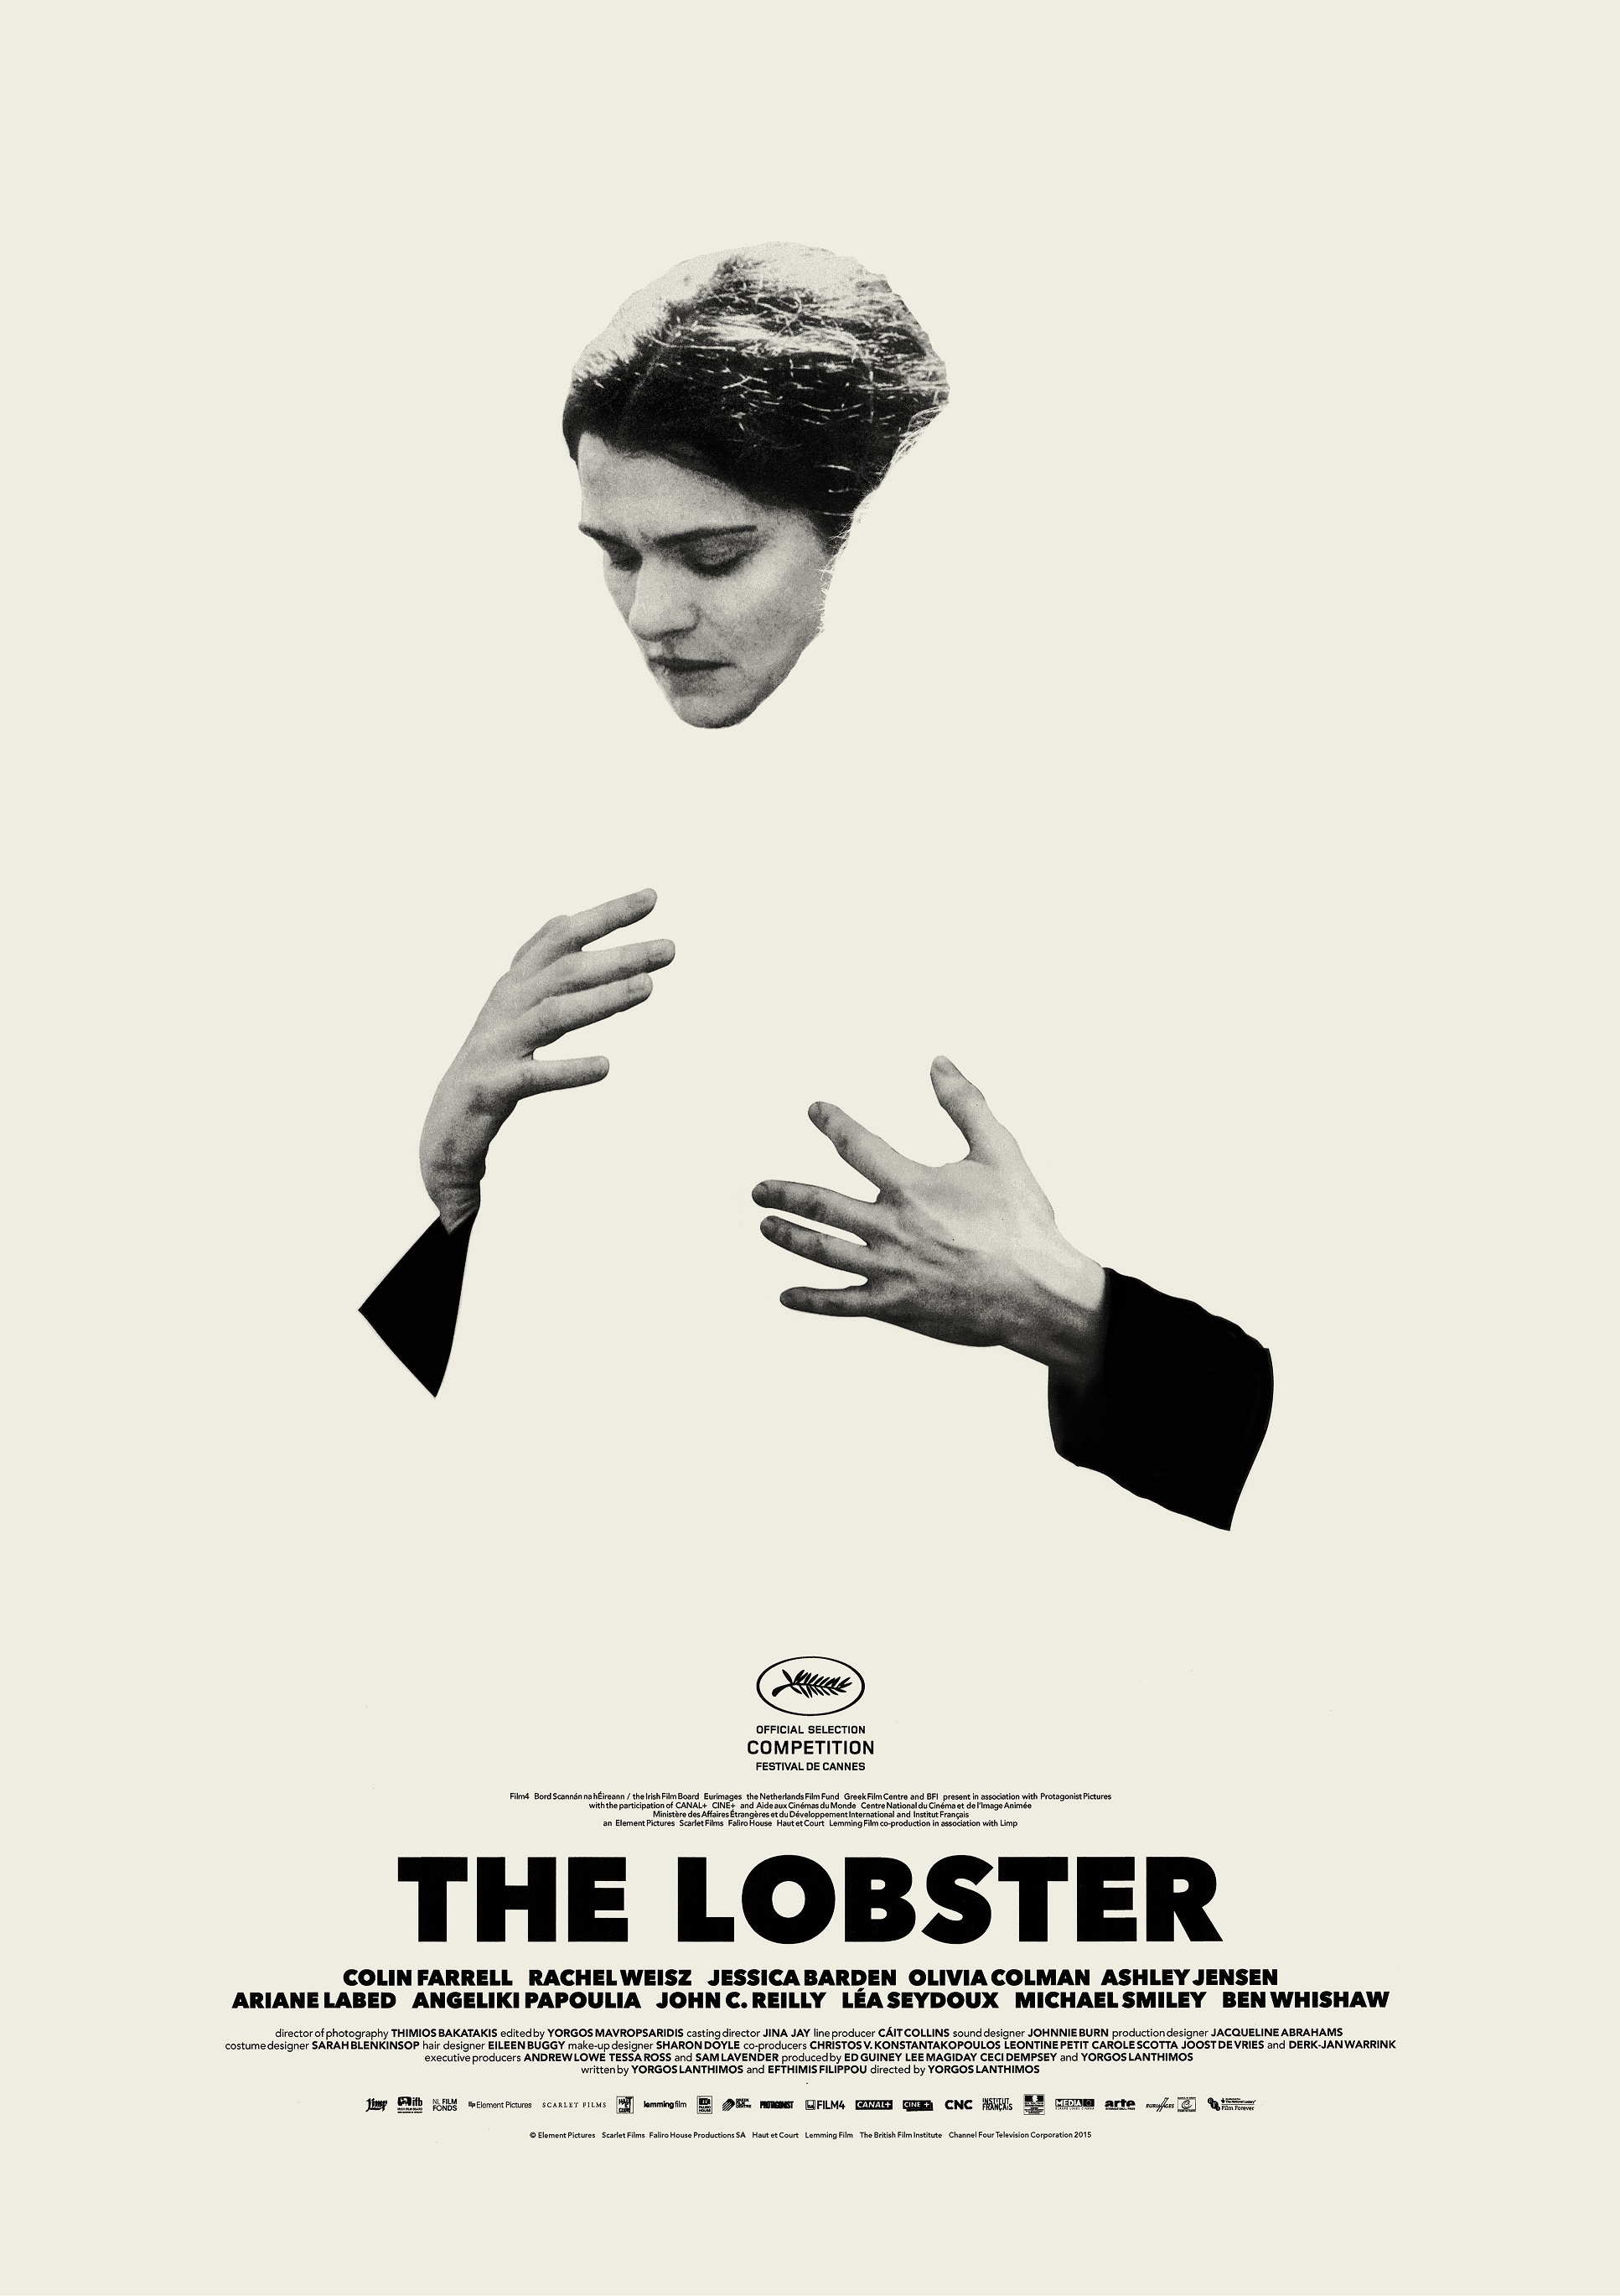 THE LOBSTER-07Setembro2015